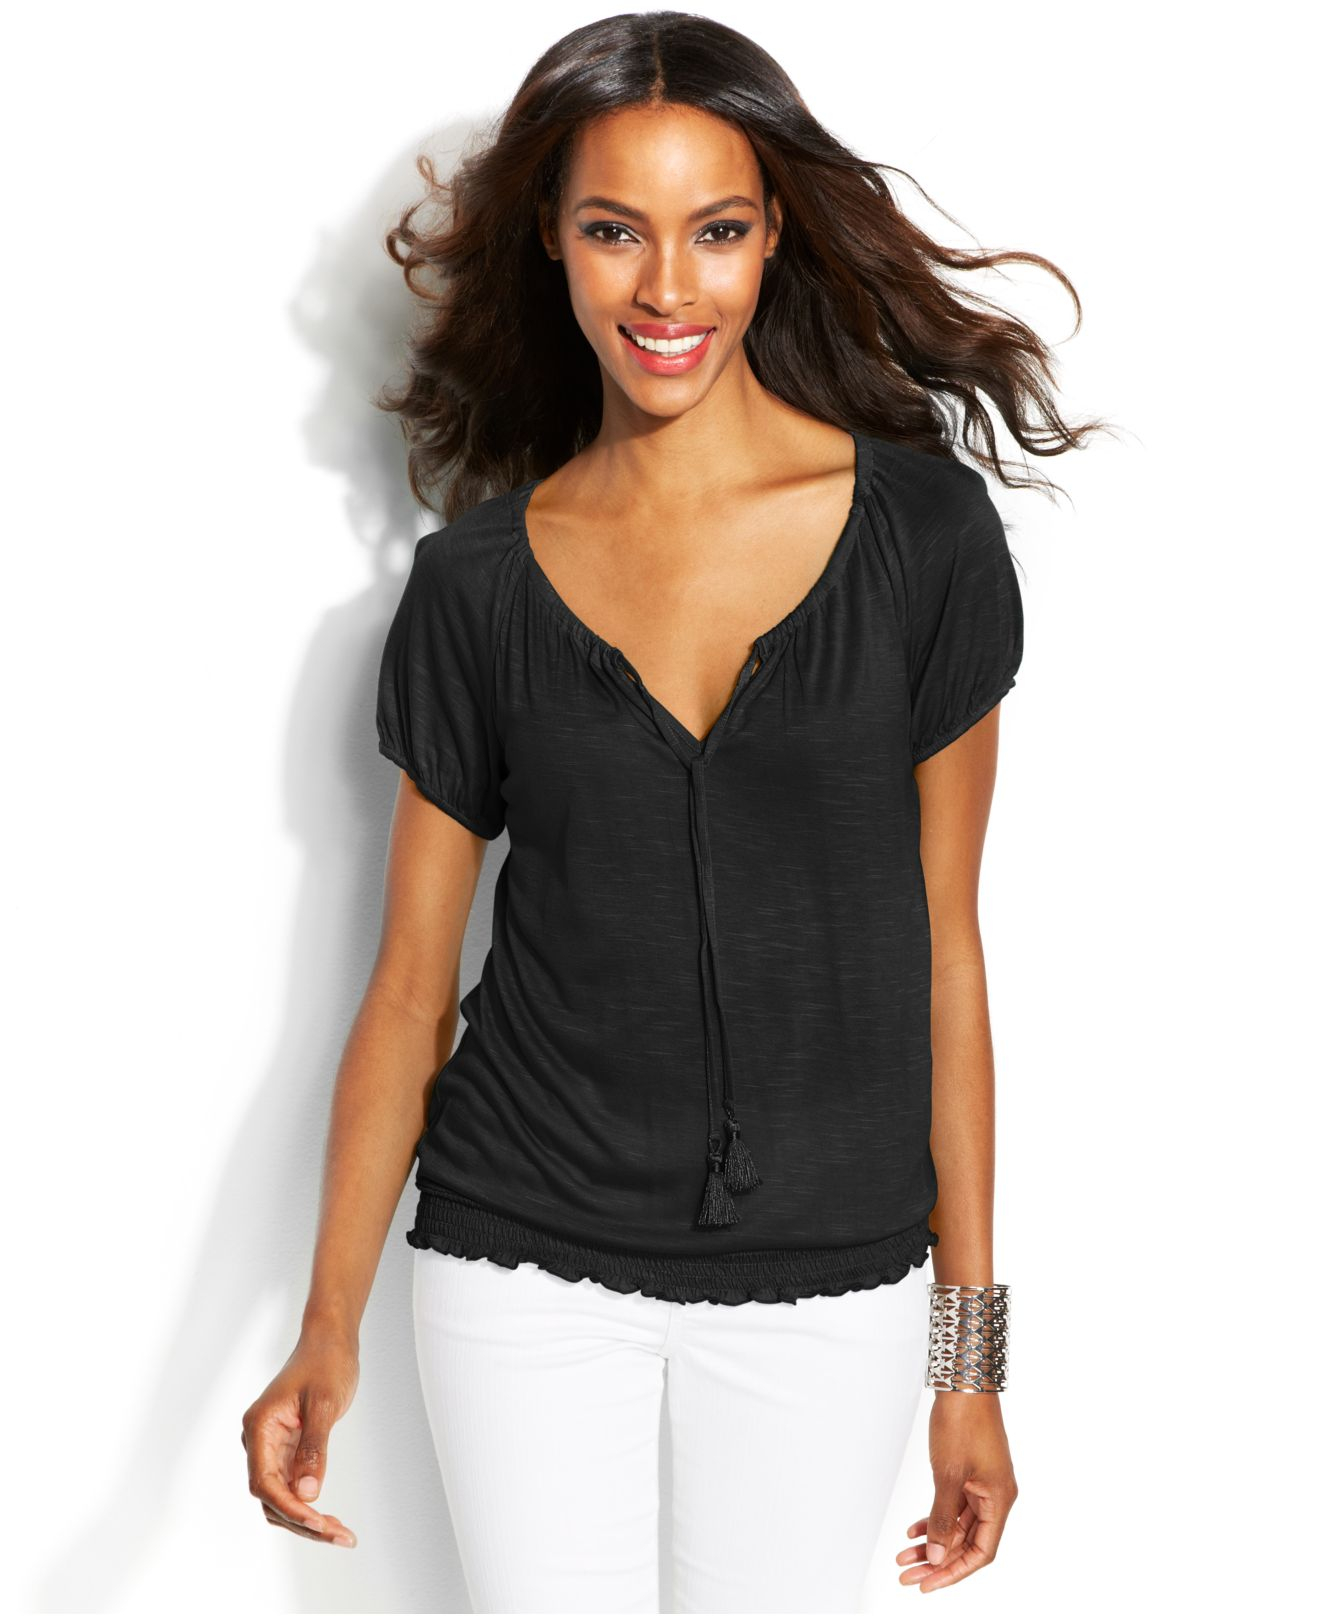 Short Sleeve Tees & Polos Tees & Henleys Little Black Dresses Find women's tops for every occasion at Express, including sweaters, tees & dressy tops that are perfect for a day in the office or a girl's night on the town. On the weekend, stay comfy with hoodies, sweatshirts and casual tops.